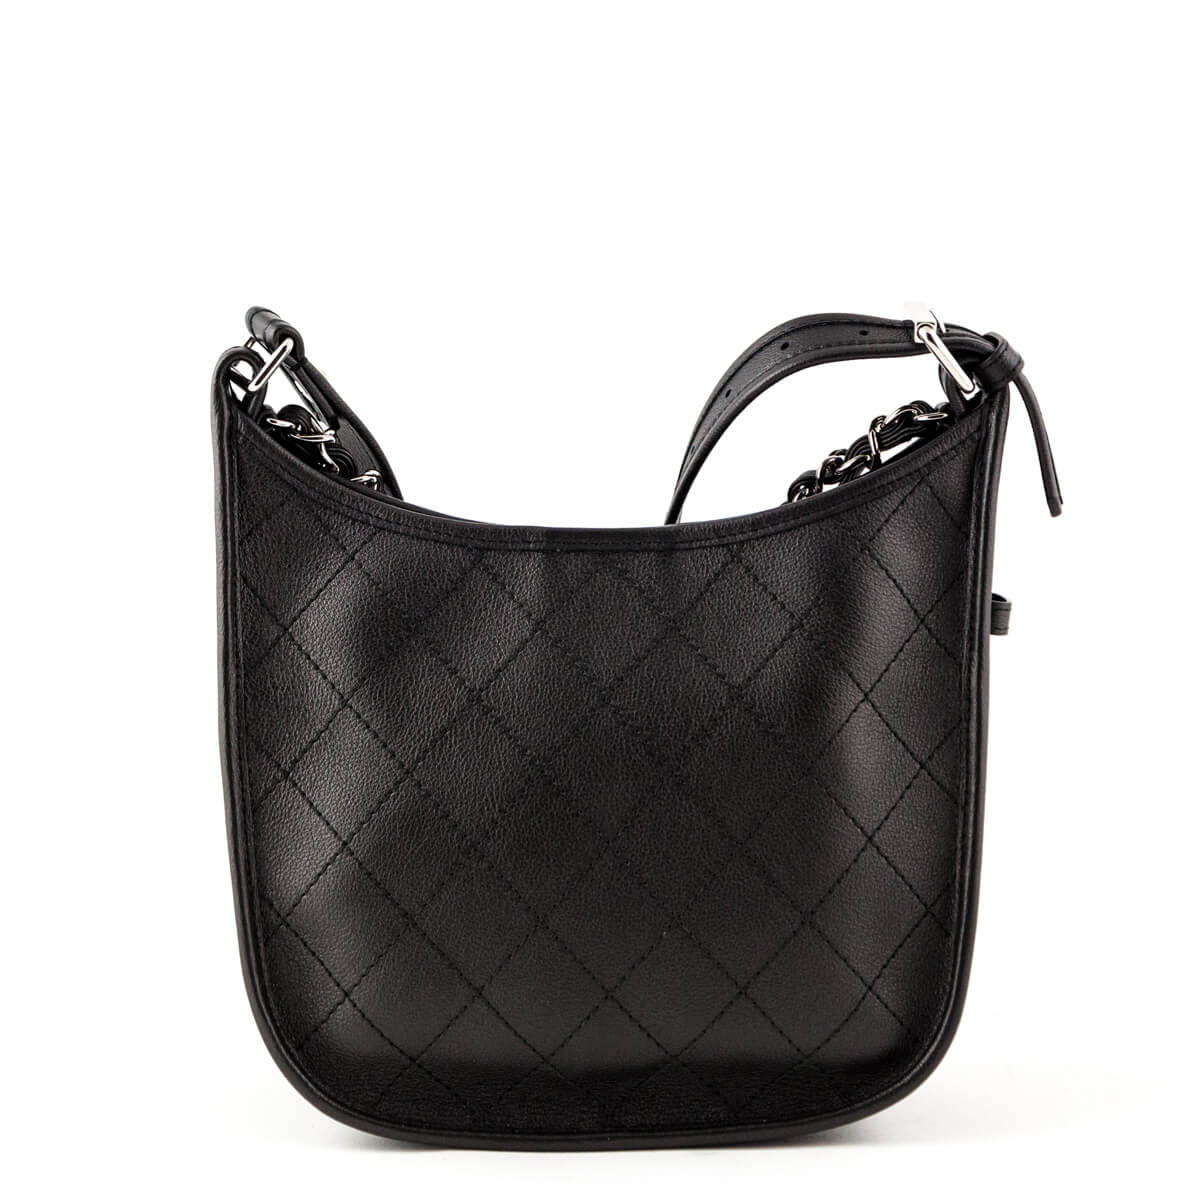 0143193f4 ... Chanel Black Quilted Calfskin Small Jungle Stroll Hobo Bag - LOVE that  BAG - Preowned Authentic ...